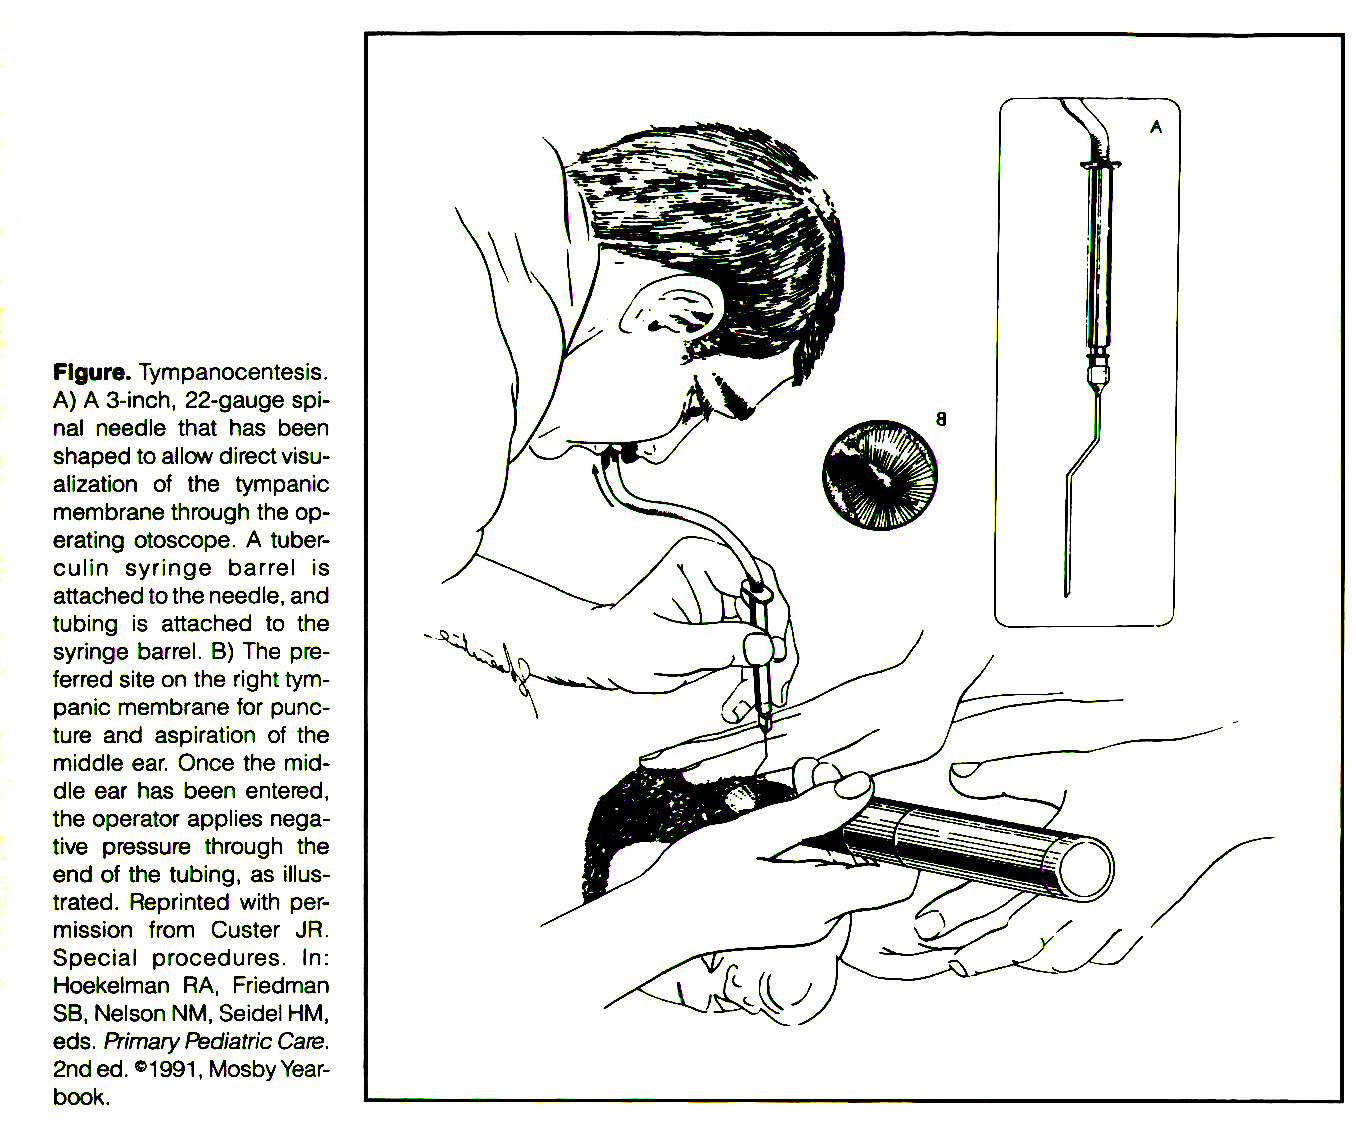 Figure. Tympanocentesis. A) A 3-inch, 22-gauge spinal needle that has been shaped to allow direct visualization of the tympanic membrane through the operating otoscope. A tuberculin syringe barrel is attached to the needle, and tubing is attached to the syringe barrel. B) The preferred site on the right tympanic membrane for puncture and aspiration of the middle ear. Once the middle ear has been entered, the operator applies negative pressure through the end of the tubing, as illustrated. Reprinted with permission from Custer JR. Special procedures. In: Hoekelman RA, Fnedman SB, Nelson NM, Seidel HM, eds. Primary Pediatrie Care. 2nd ed. ©1991 , Mosby Yearbook.